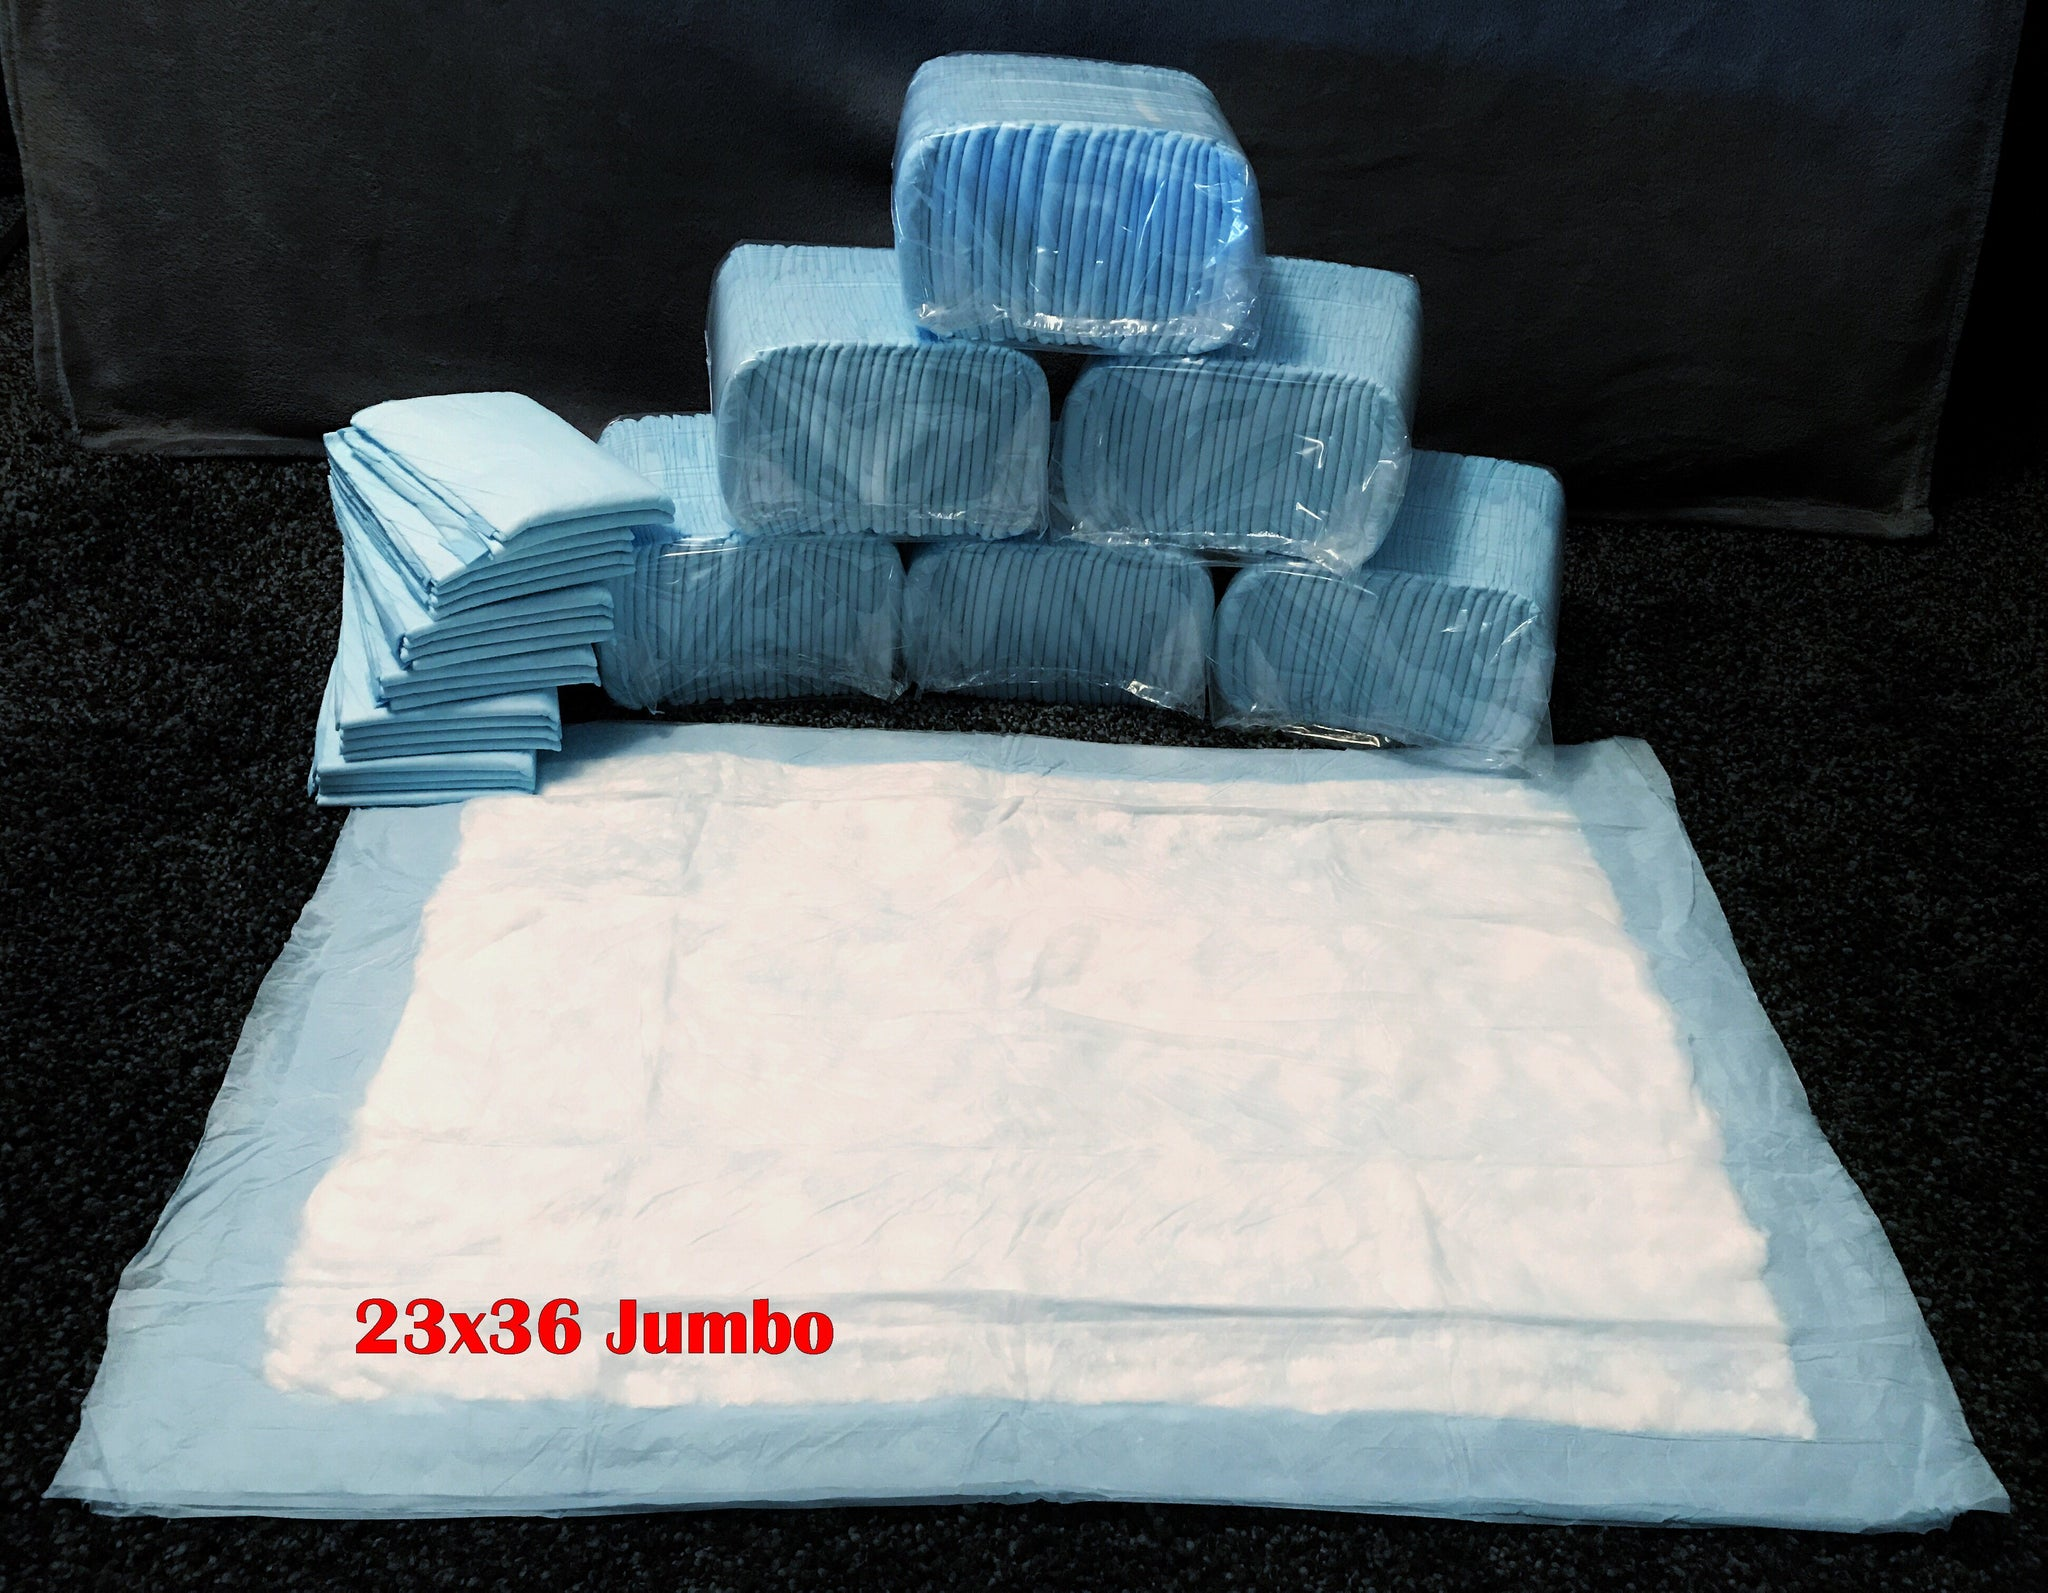 300 Jumbo Size 23x36 Inch Pee Pads - Free Shipping $94.97 - $15 Savings For Bulk Discount